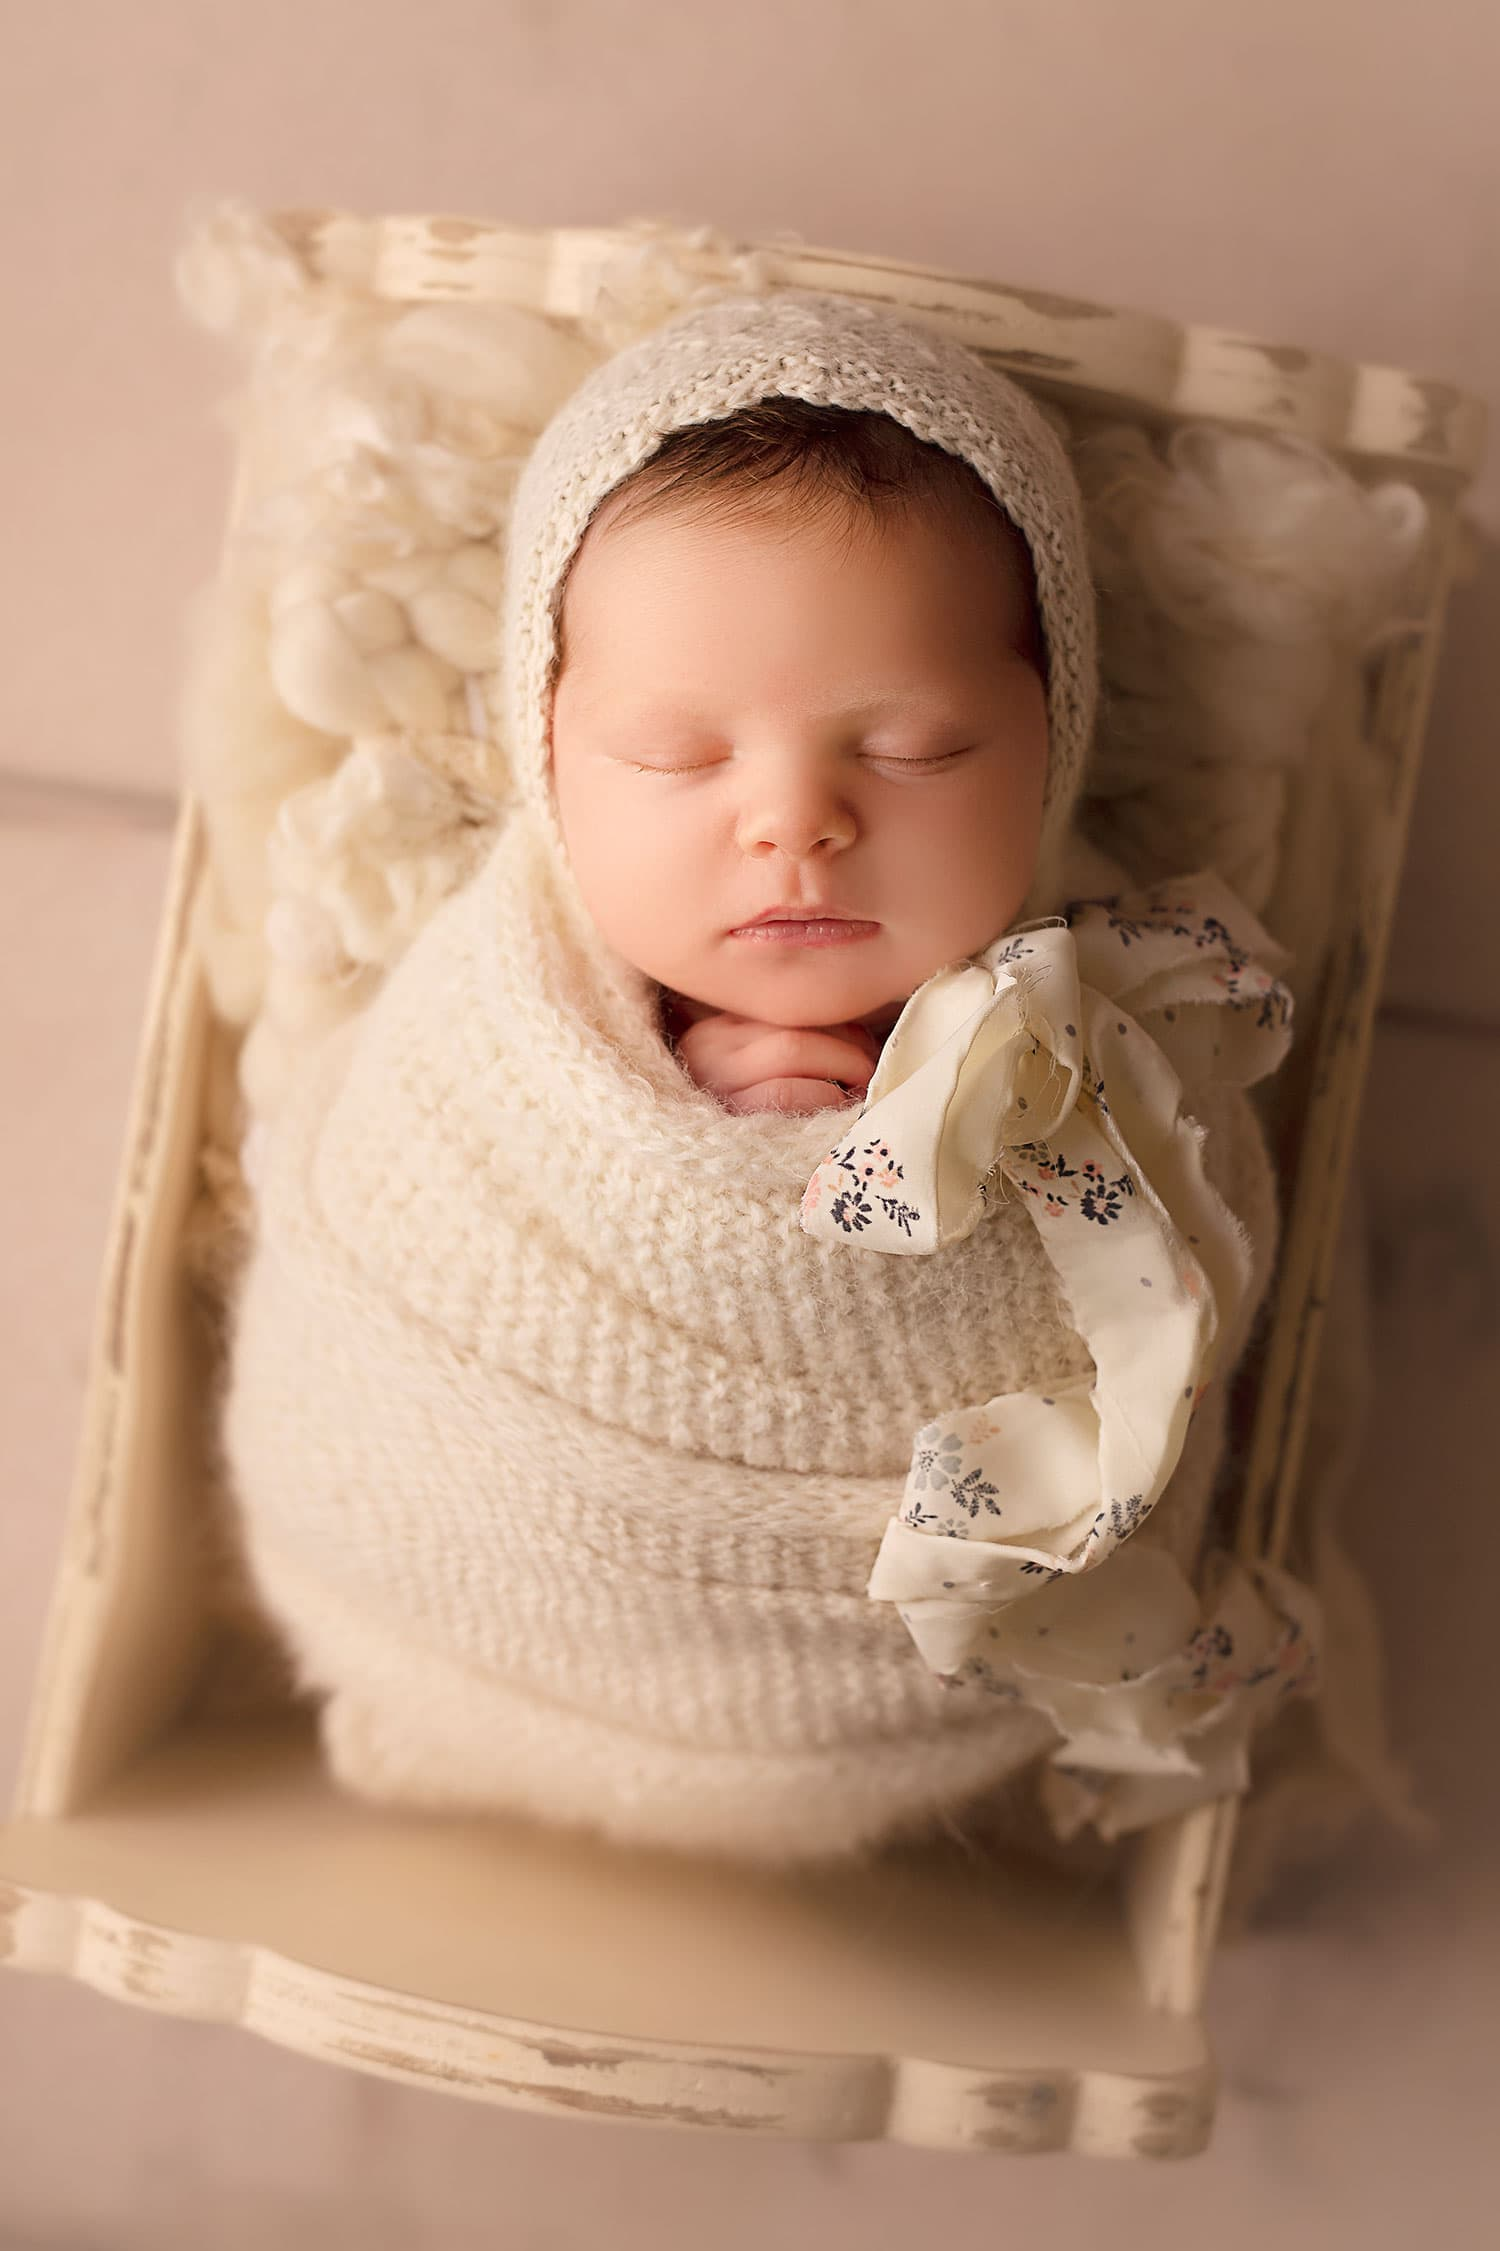 newborn baby in white bonnet by Annie Whitaker Photography